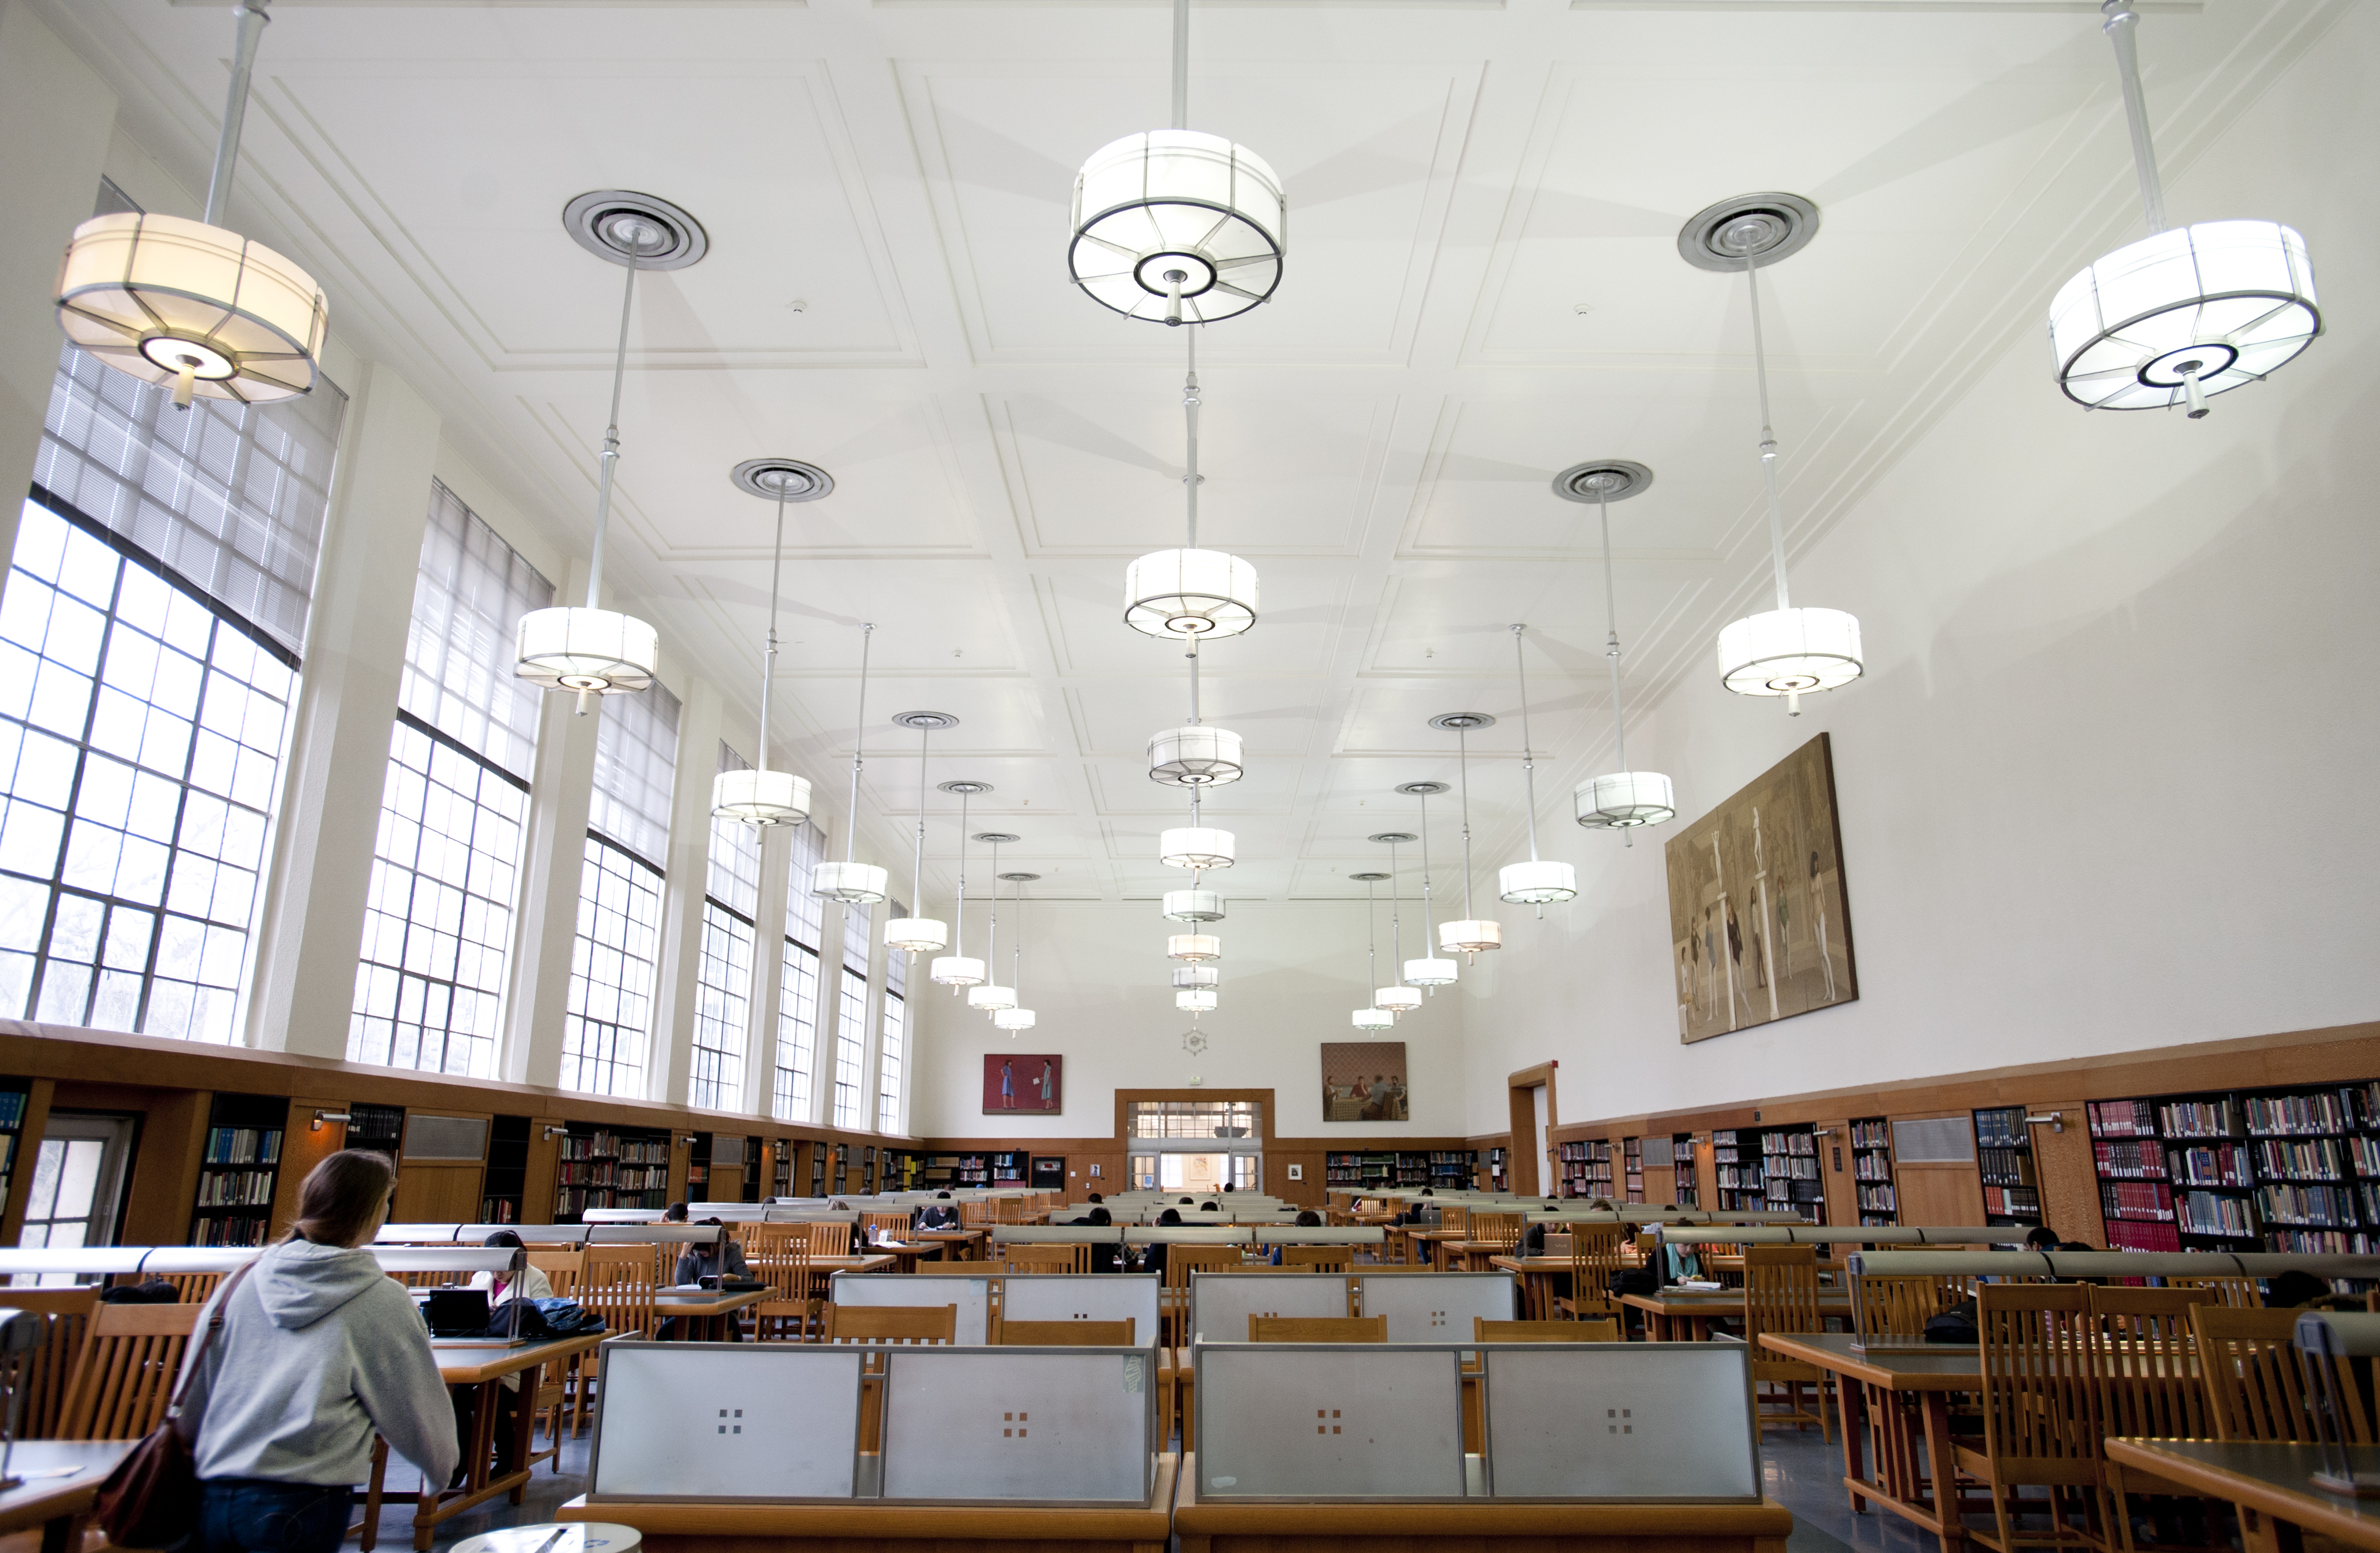 Students study in the Main Reading Room at Shields Library at UC Davis